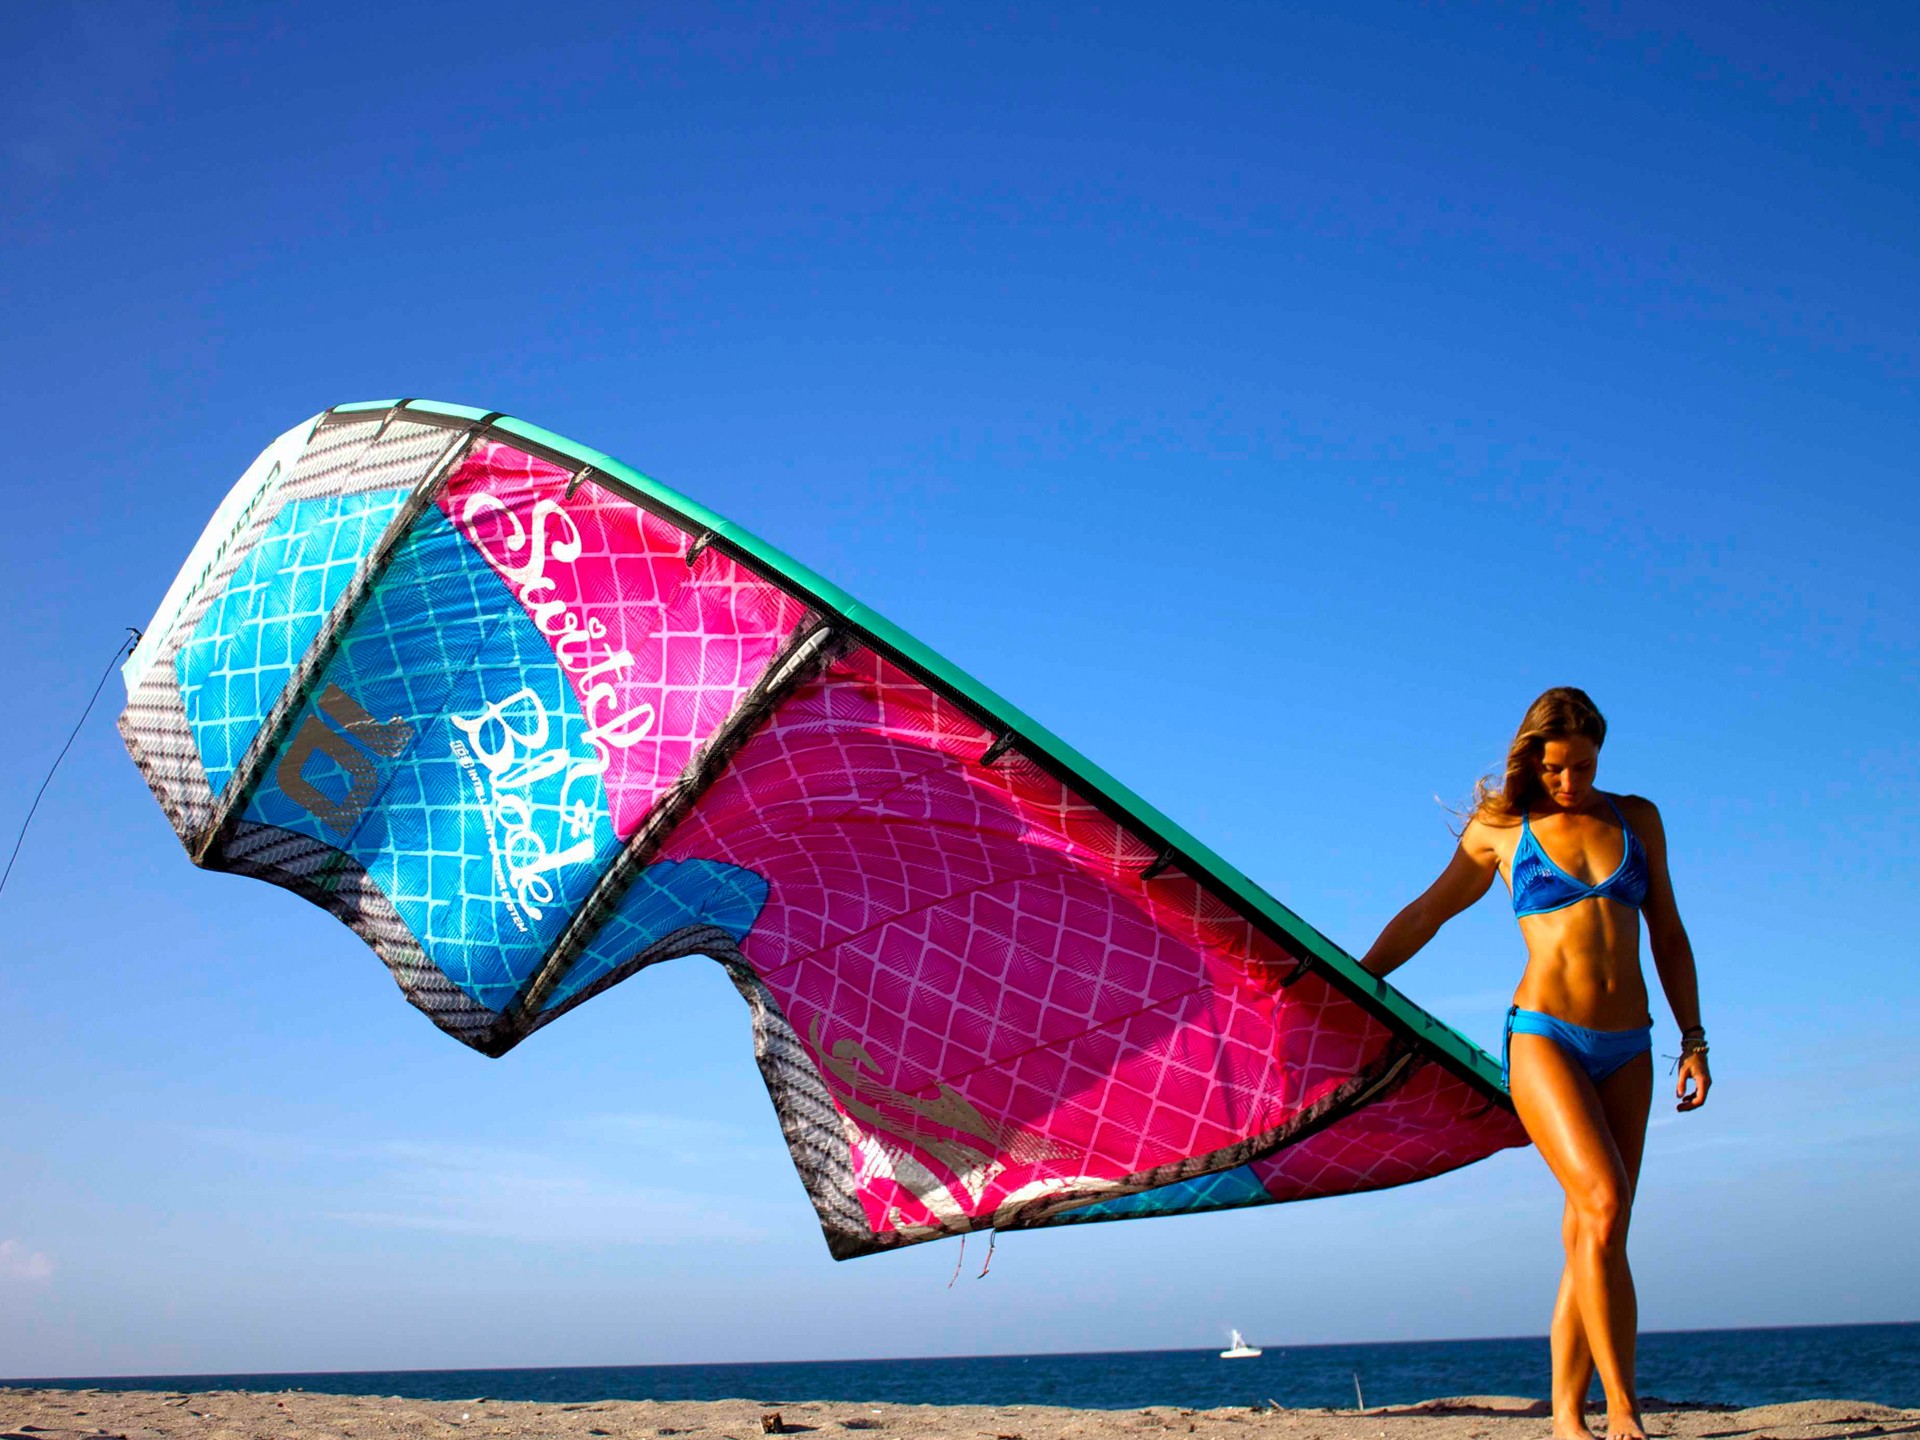 kitesurf wallpaper image - Melissa Gil with the Cabrinha Switchblade kite - in bikini on the beach - in resolution: Standard 4:3 1920 X 1440